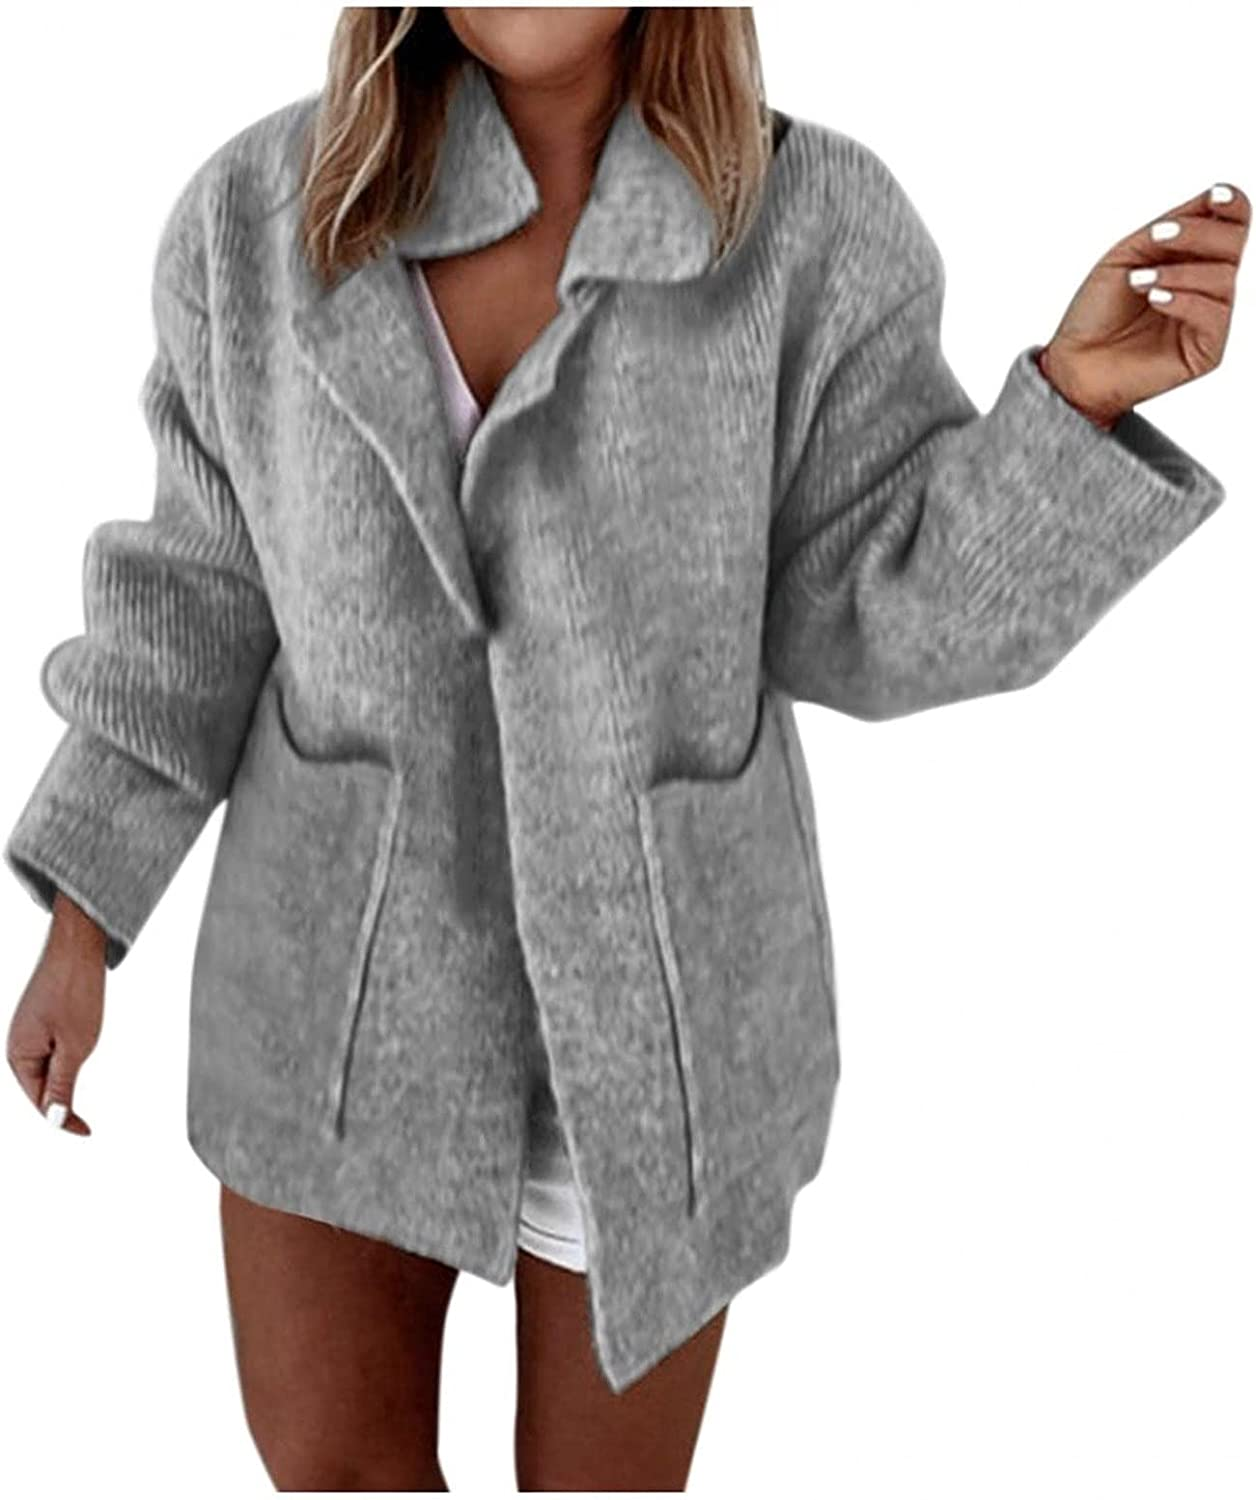 Kanzd Cardigan Sweaters wholesale for Women Directly managed store Fashion Long Boyfr Knit Sleeve